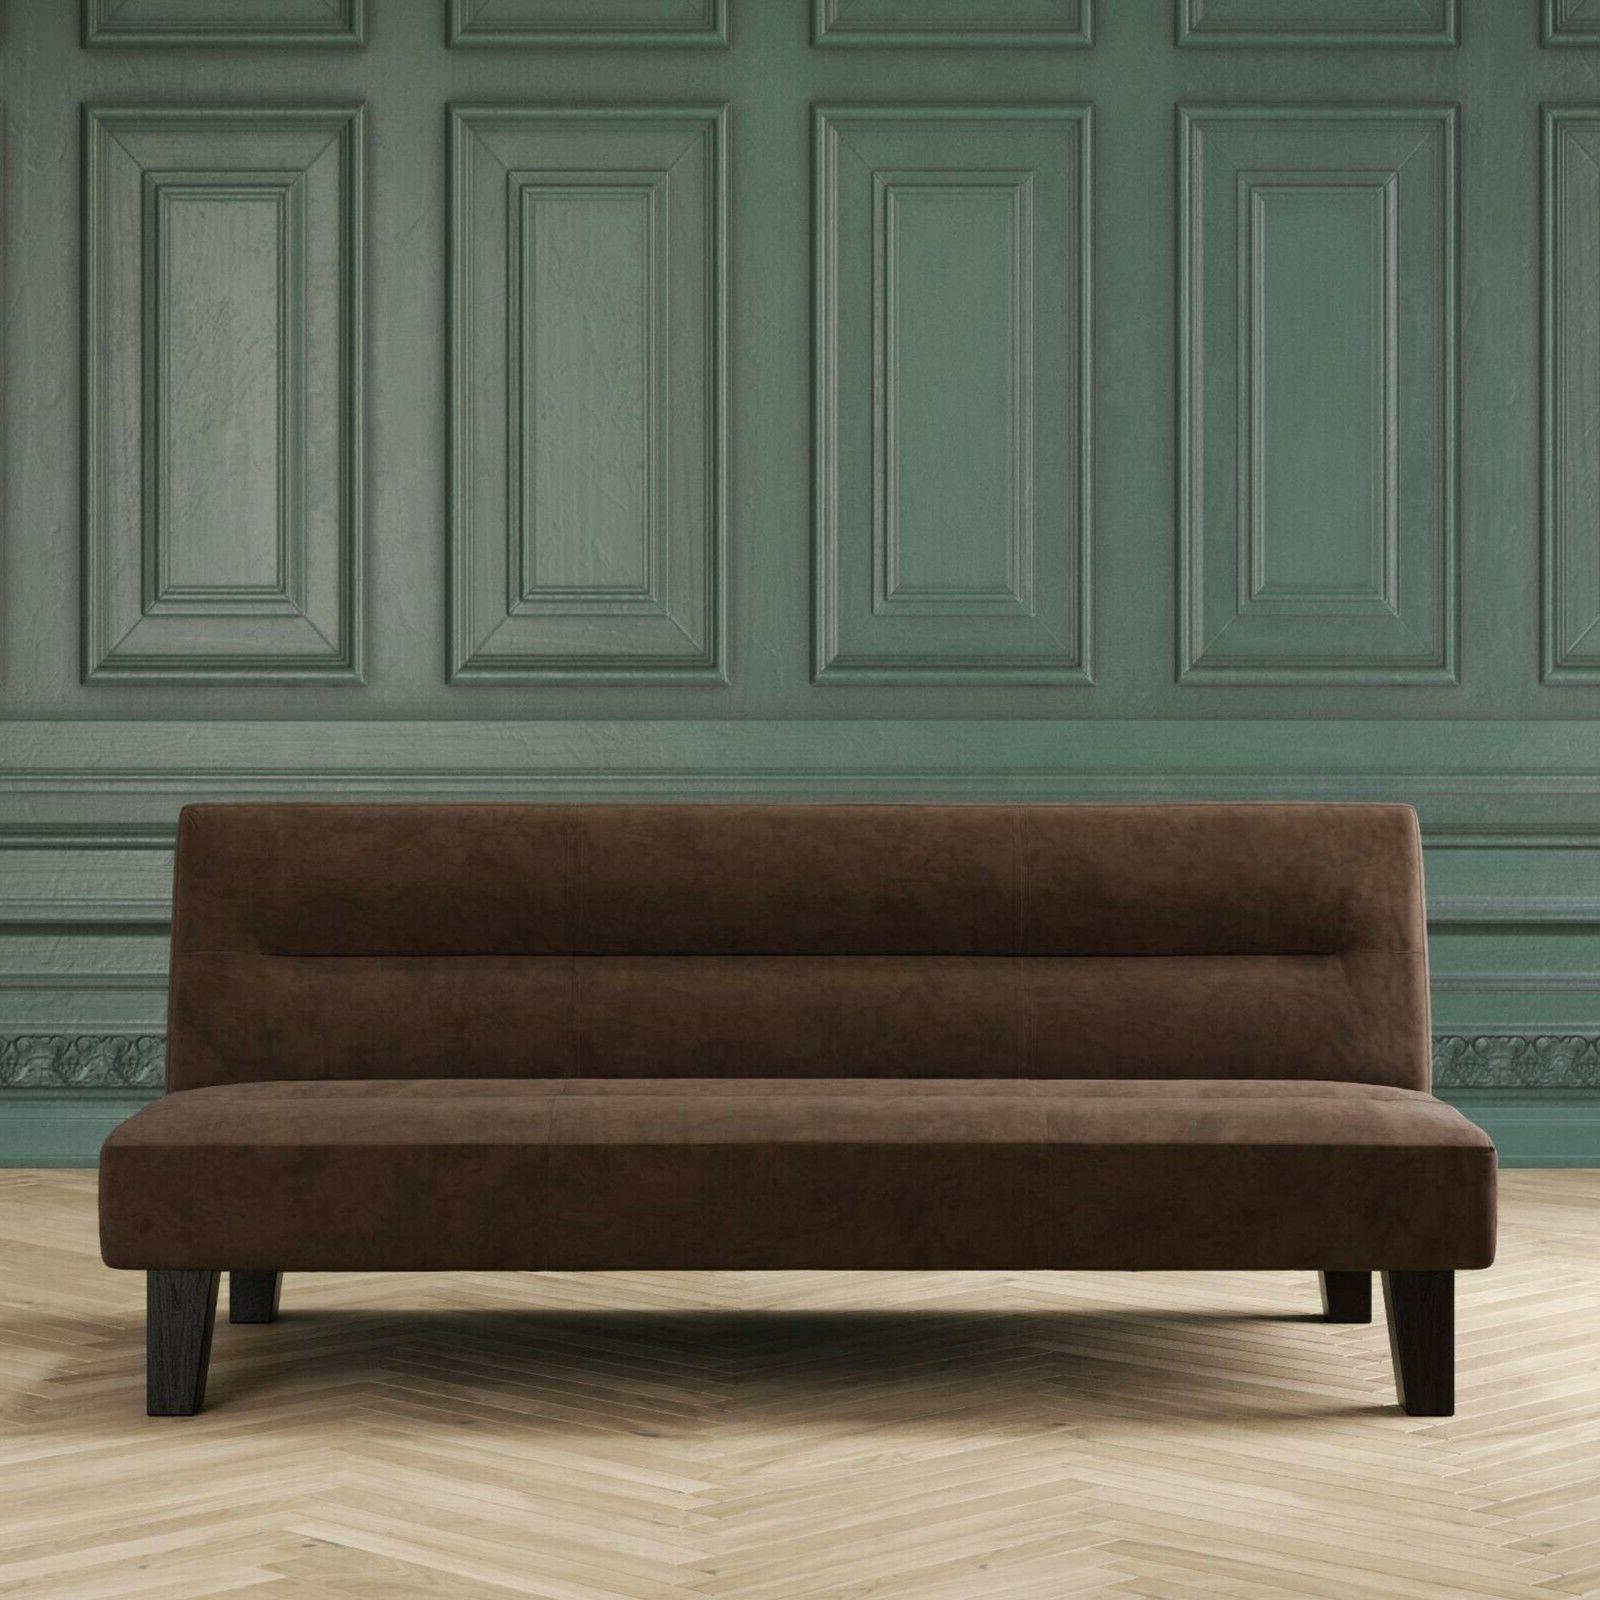 Futon Small Guests NEW